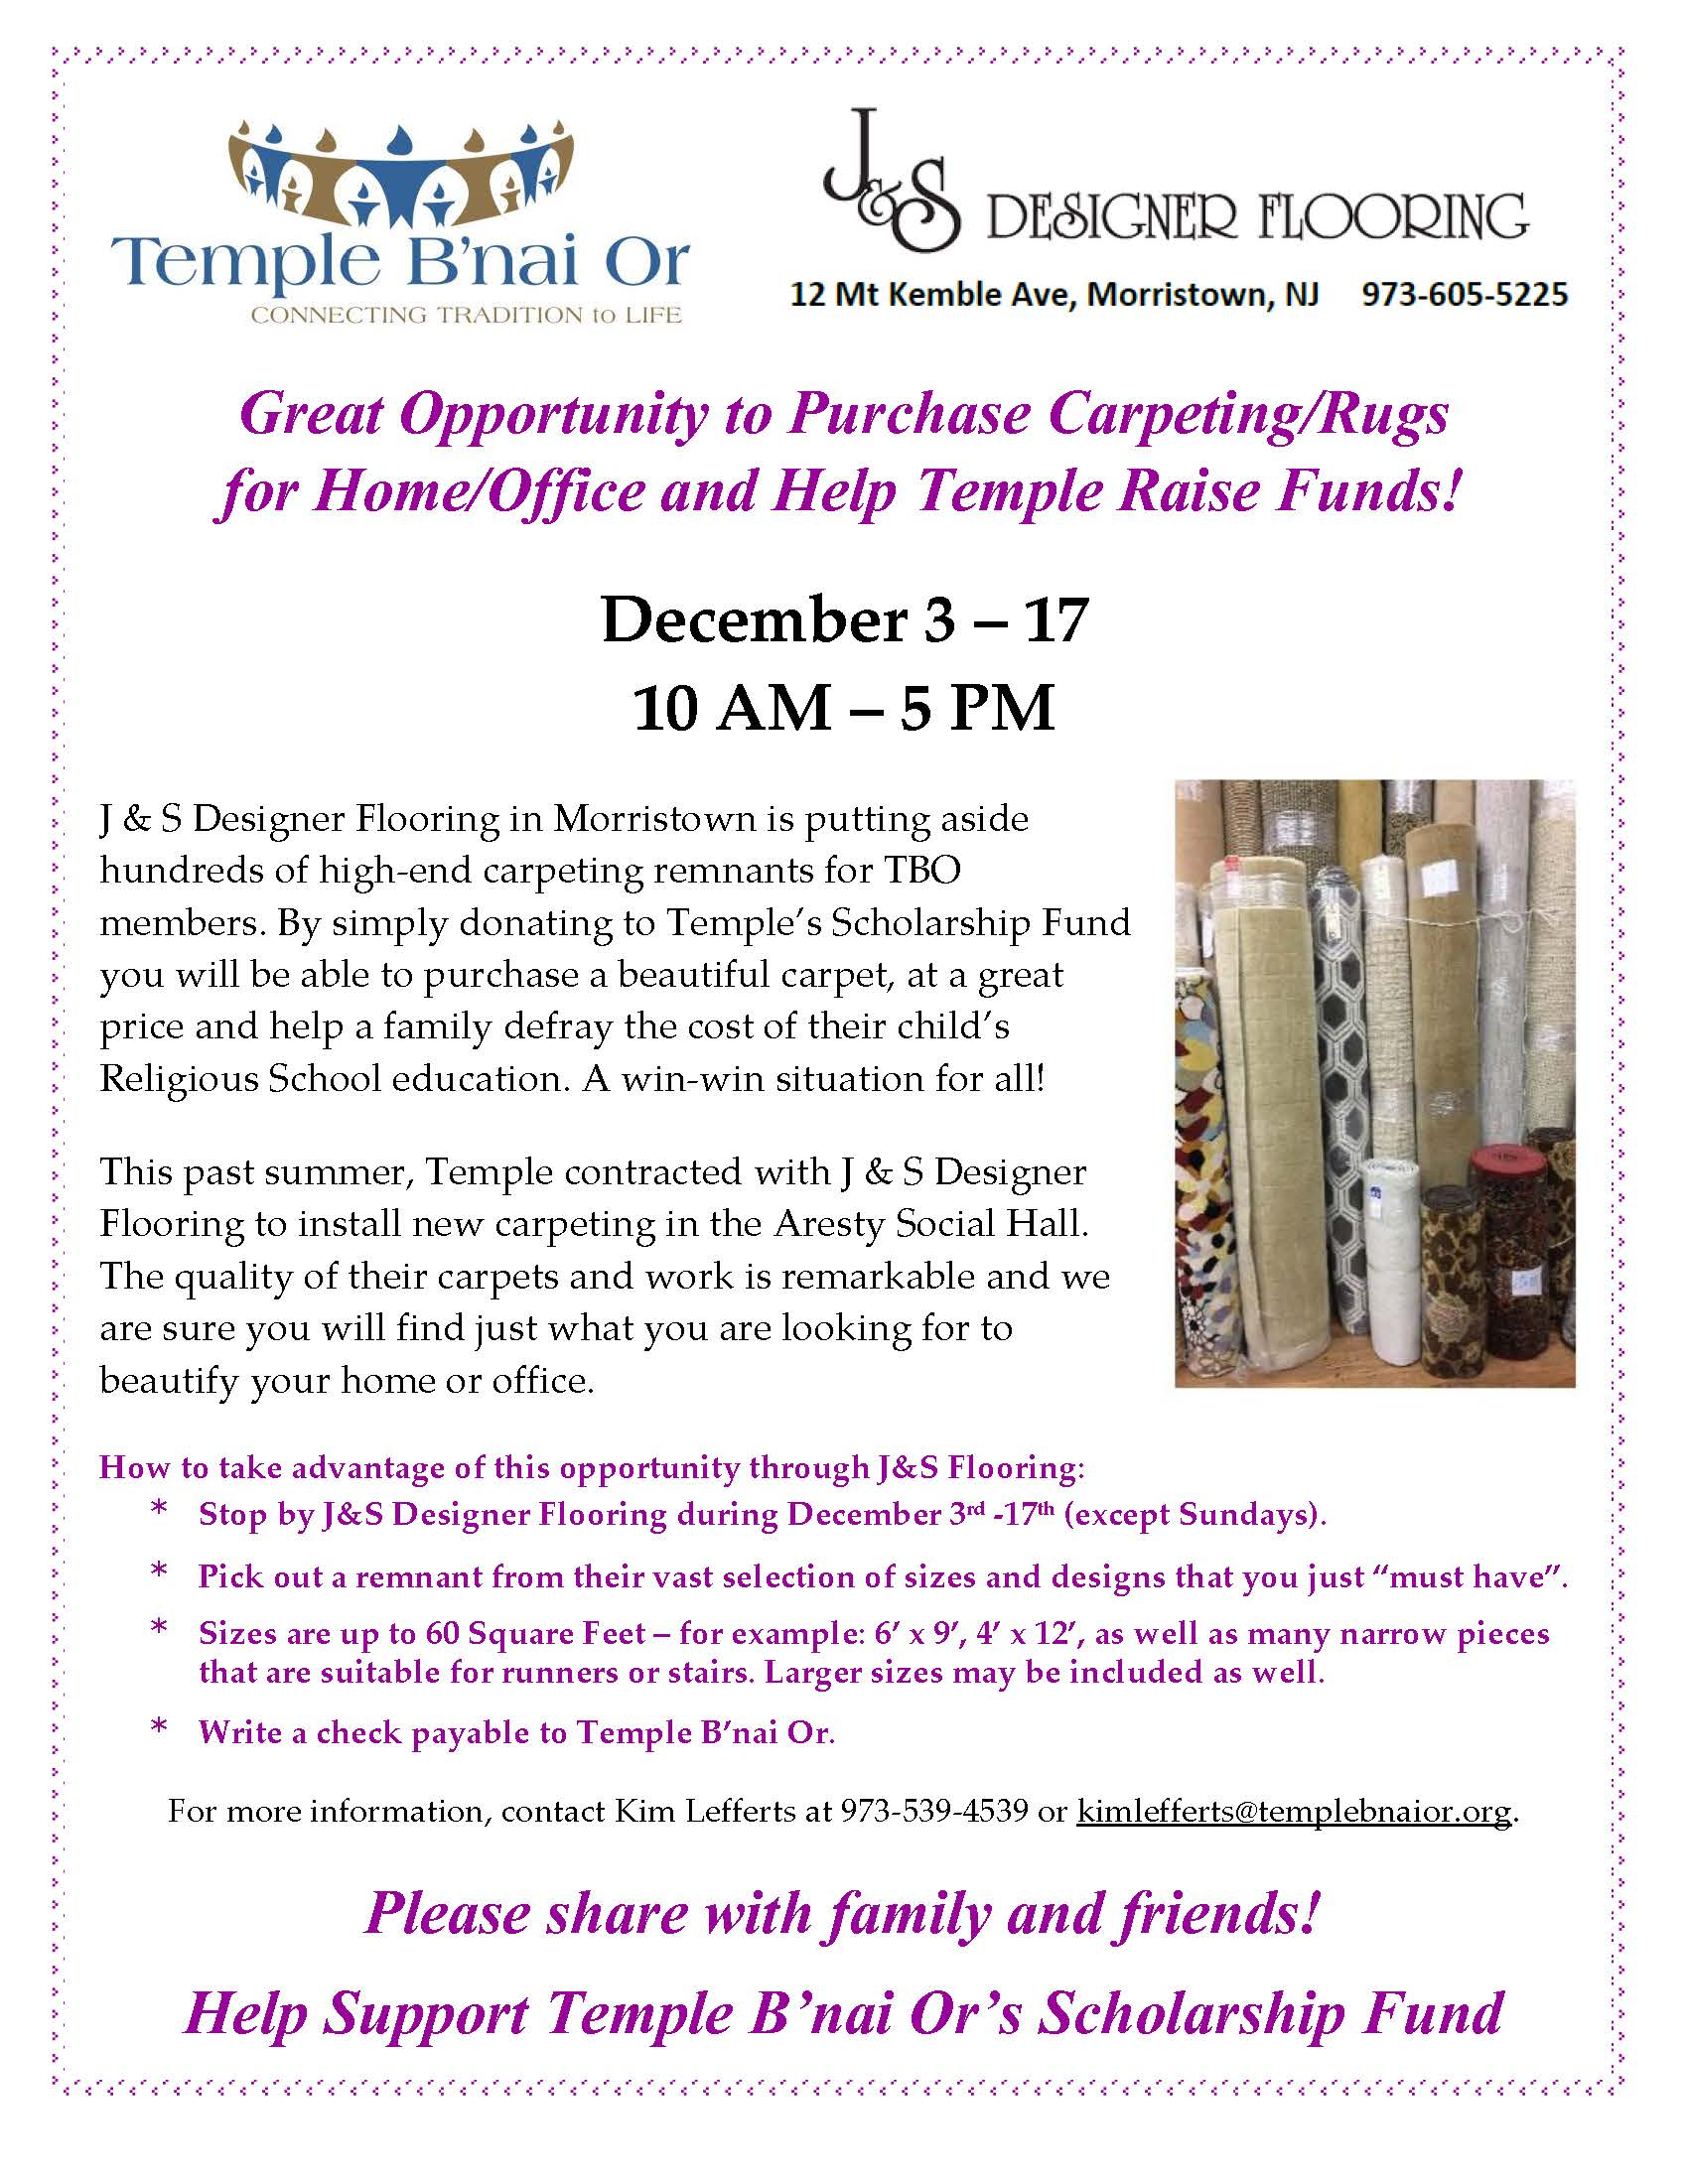 J S Designer Flooring Sale (2) | Temple B'nai Or | Morristown, NJ